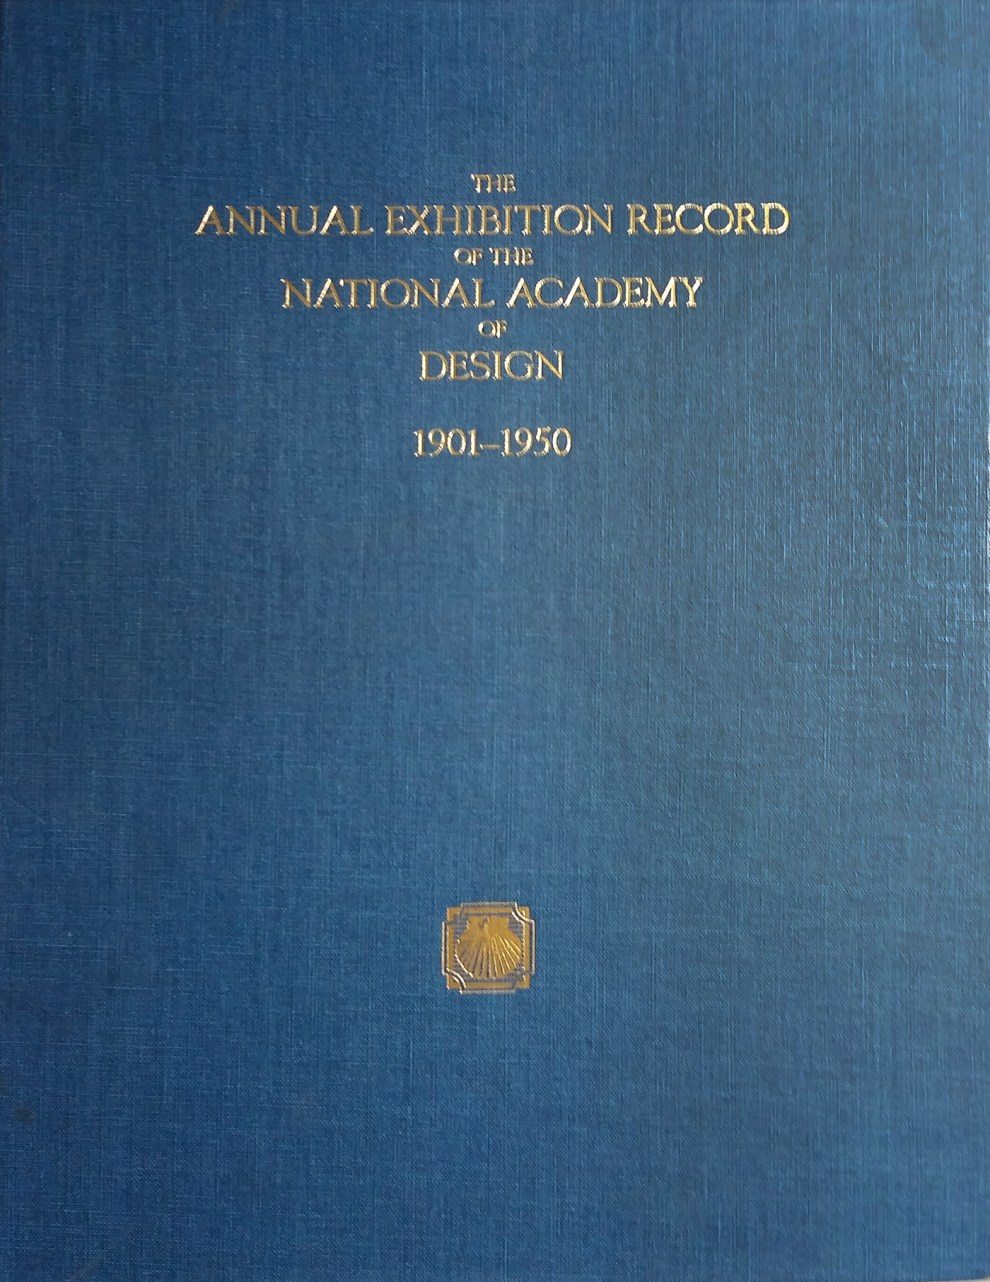 National Academy of Design Annual Exhibition Record